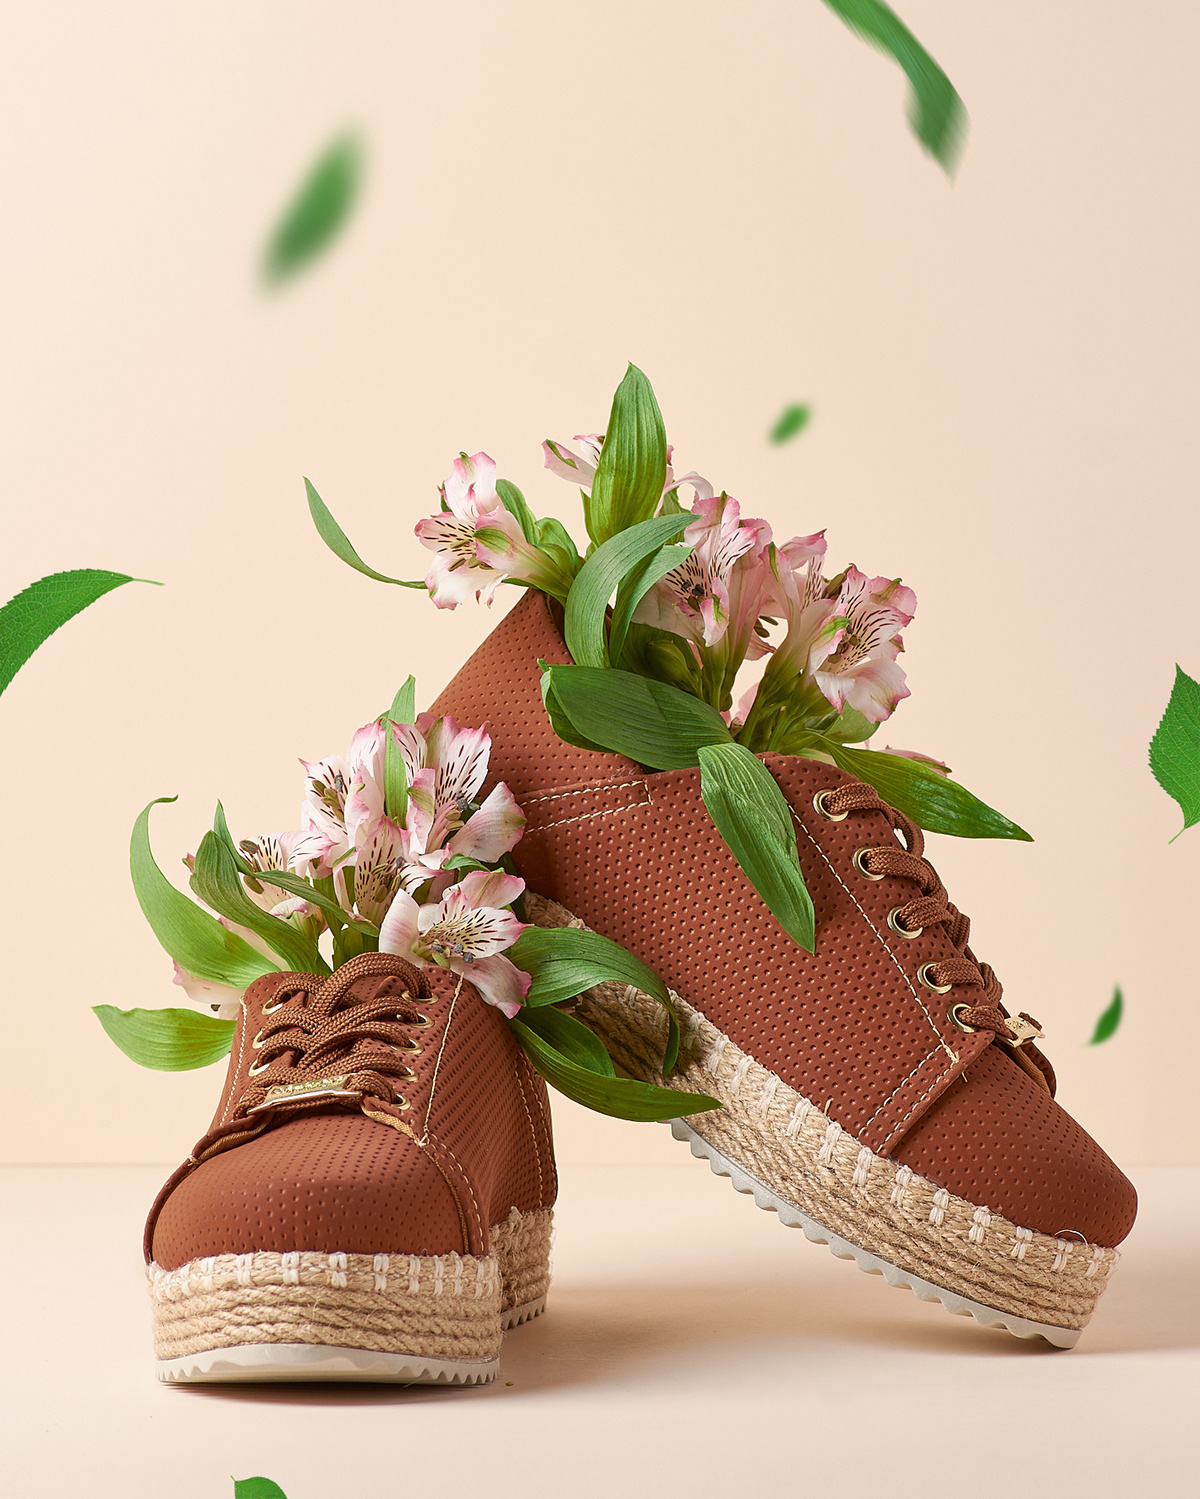 Flowers leaf Product Photography shoes sneakers spring